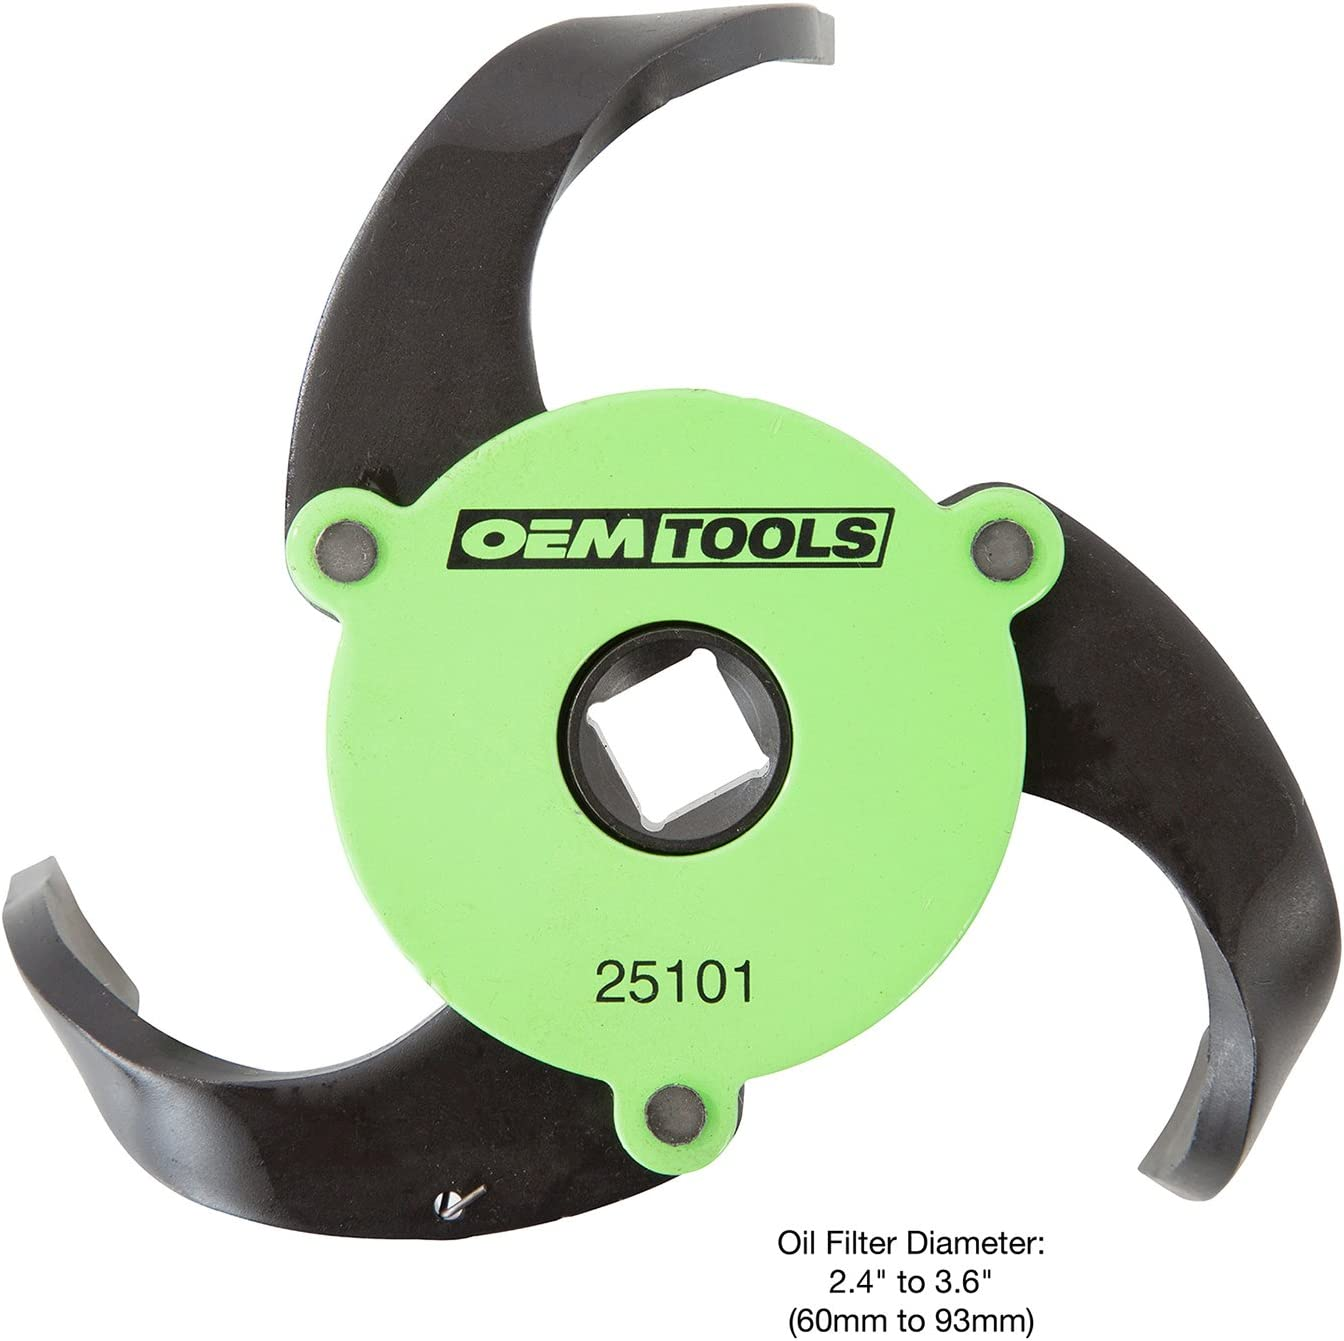 OEMTOOLS 25101 3-Jaw Adjustable Magnetic Oil Filter Wrench